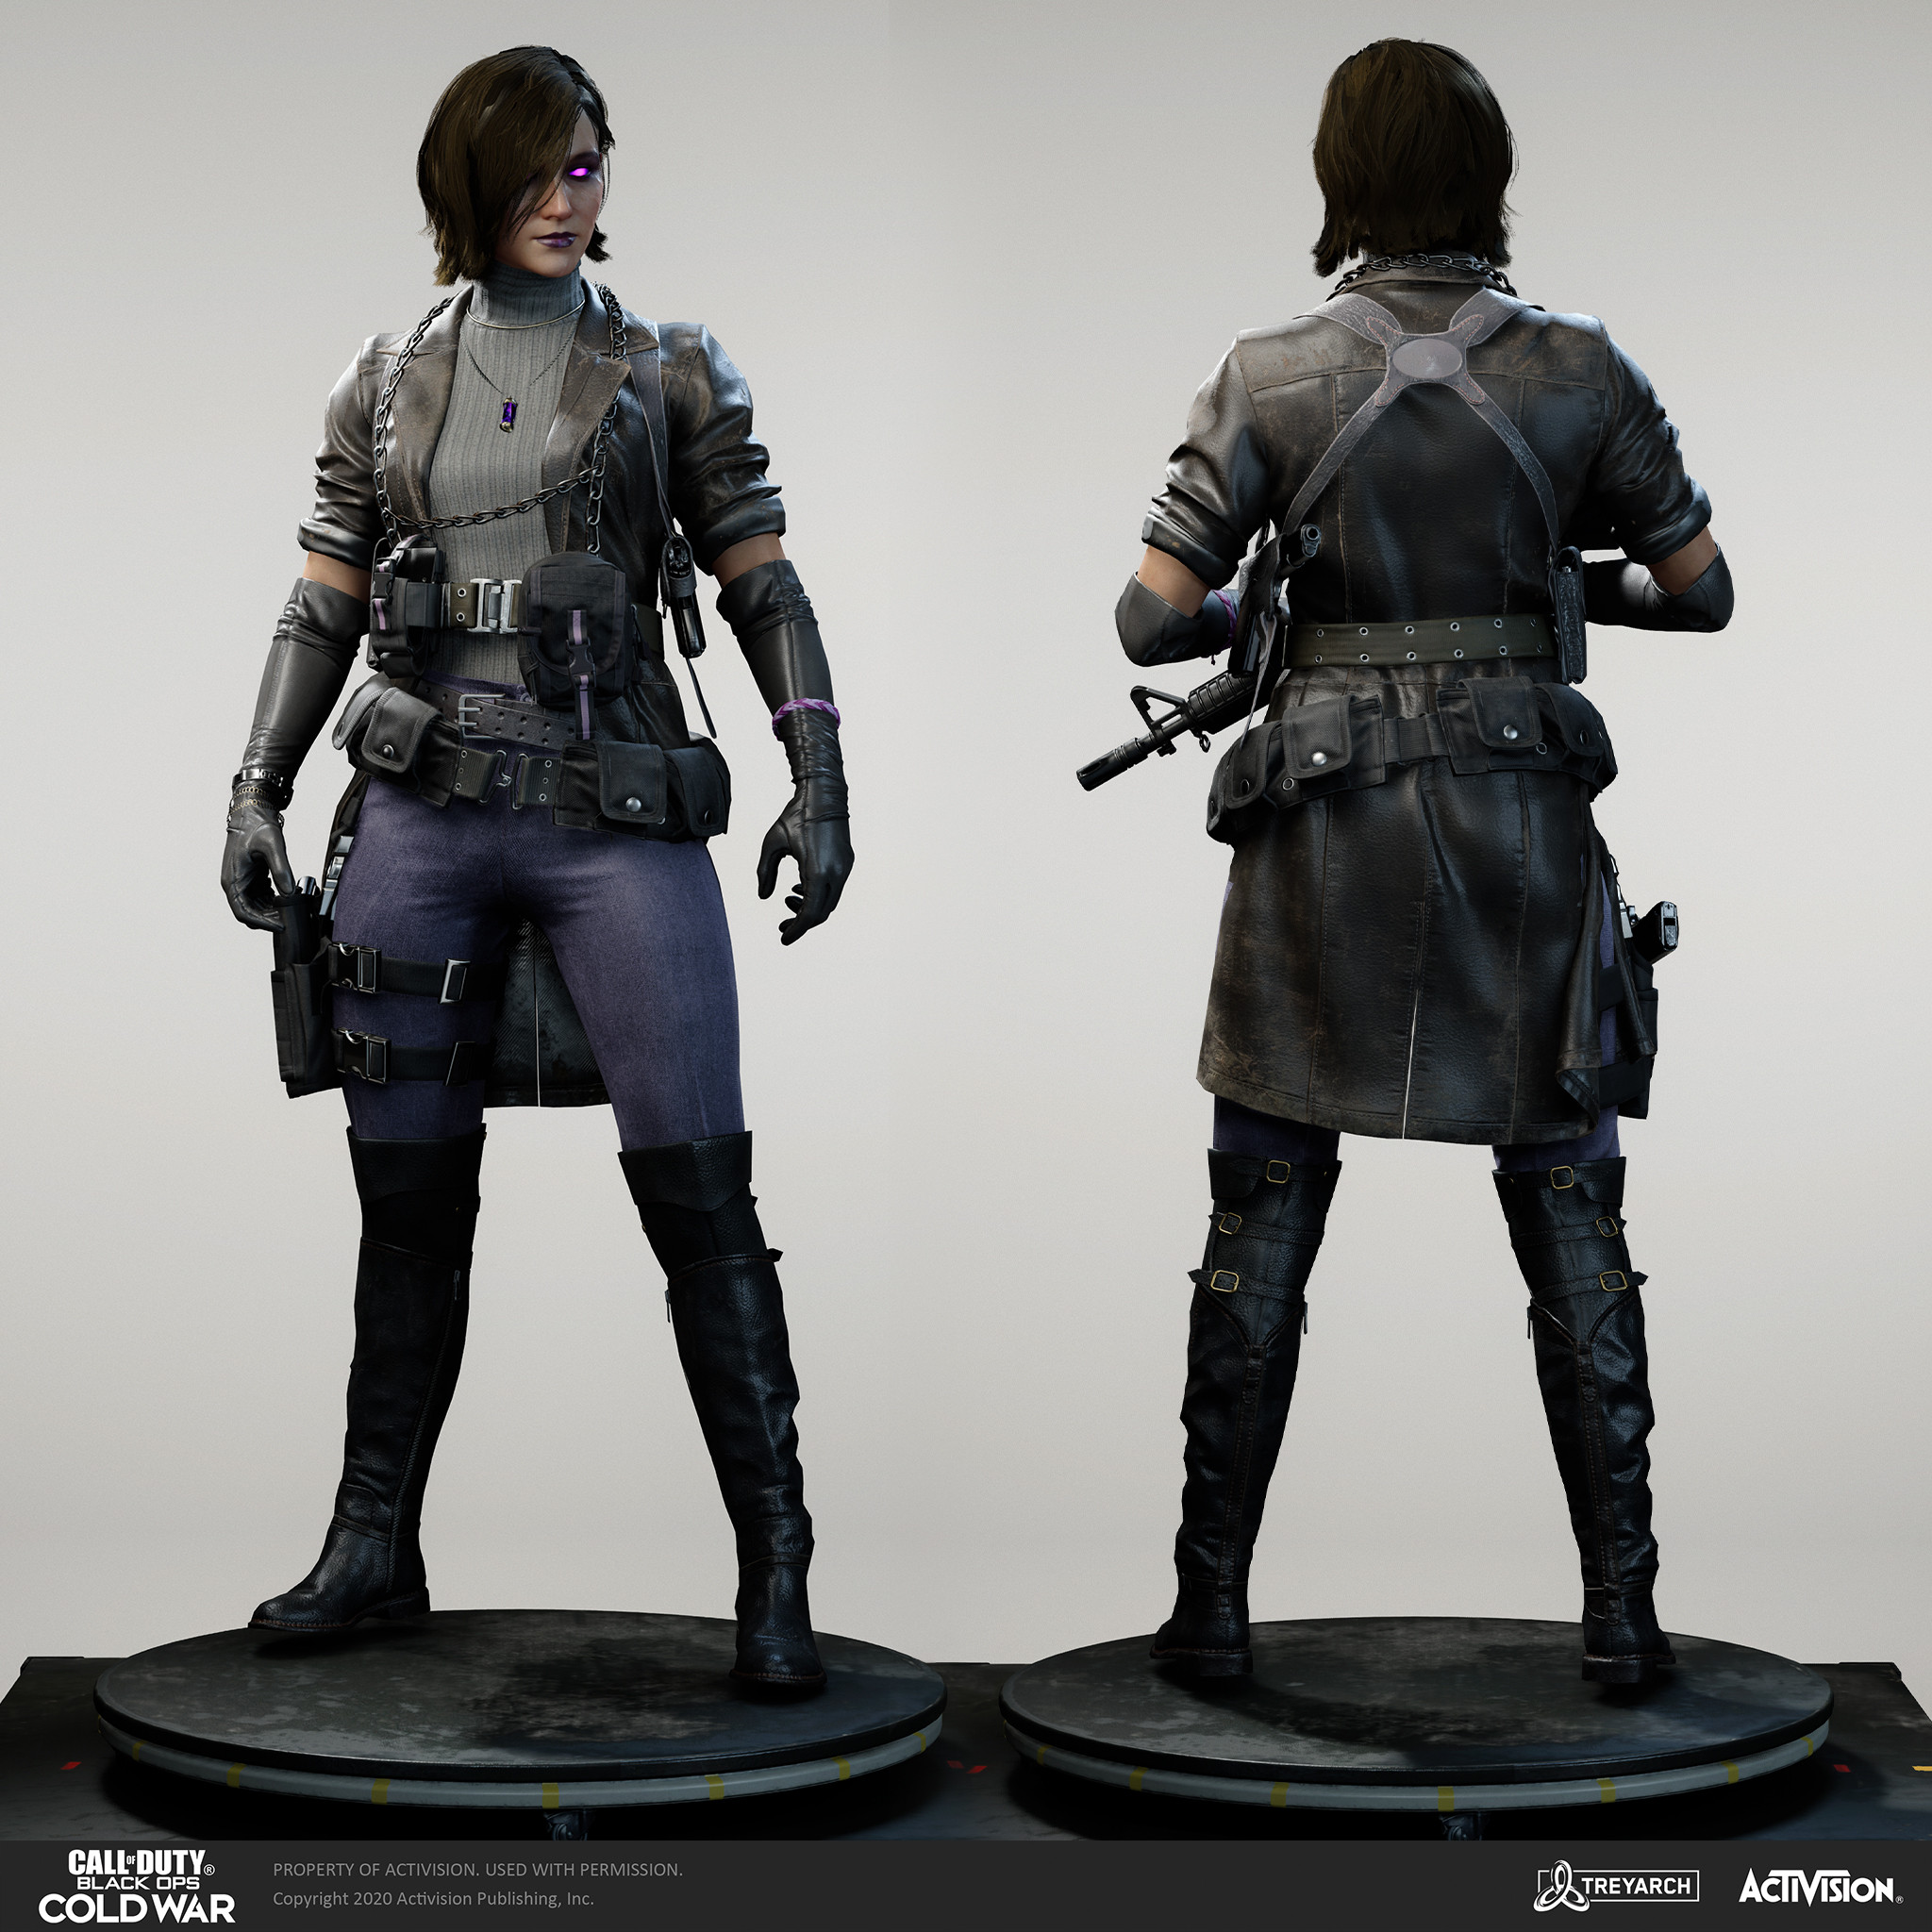 Samantha Maxis operator - Noir.  I was responsible for the design, game mesh assembly, and textures/materials. Individual models/bakes used on the character were created by the Treyarch, SHG, Raven, and OS teams. Head model by Activision Shanghai Studio.